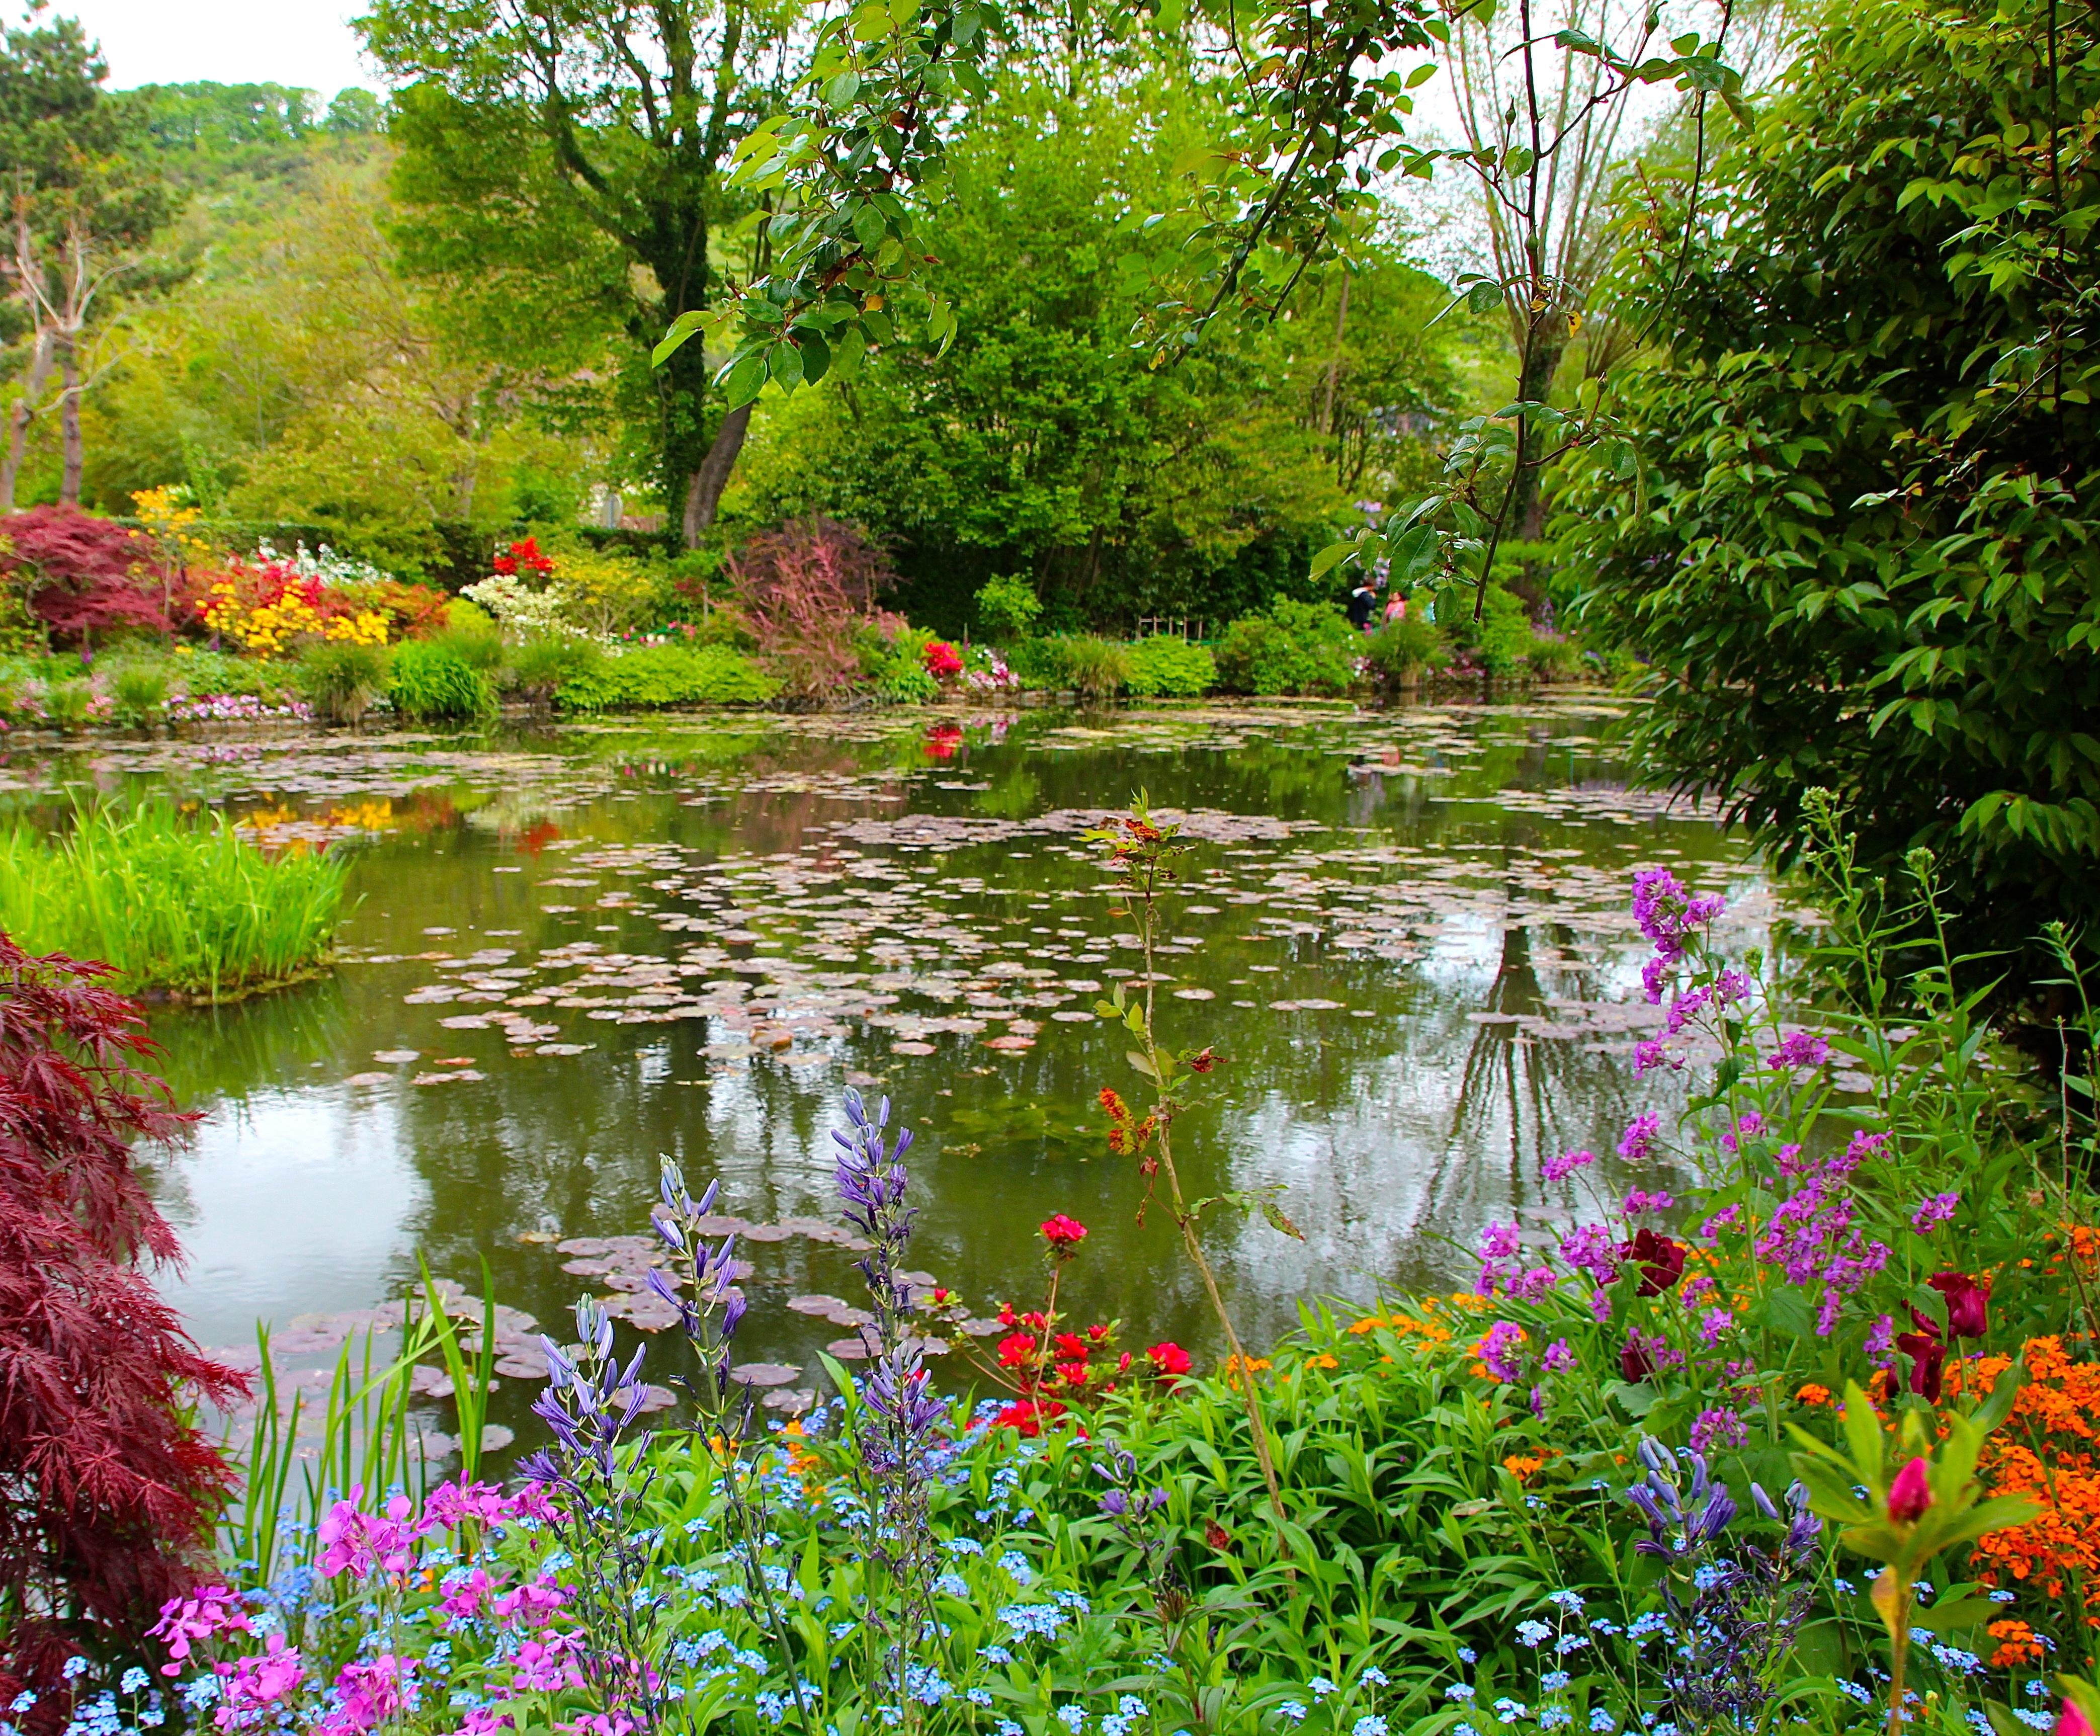 Spring flowers blooming at Giverny. France. 05.09.16. 23